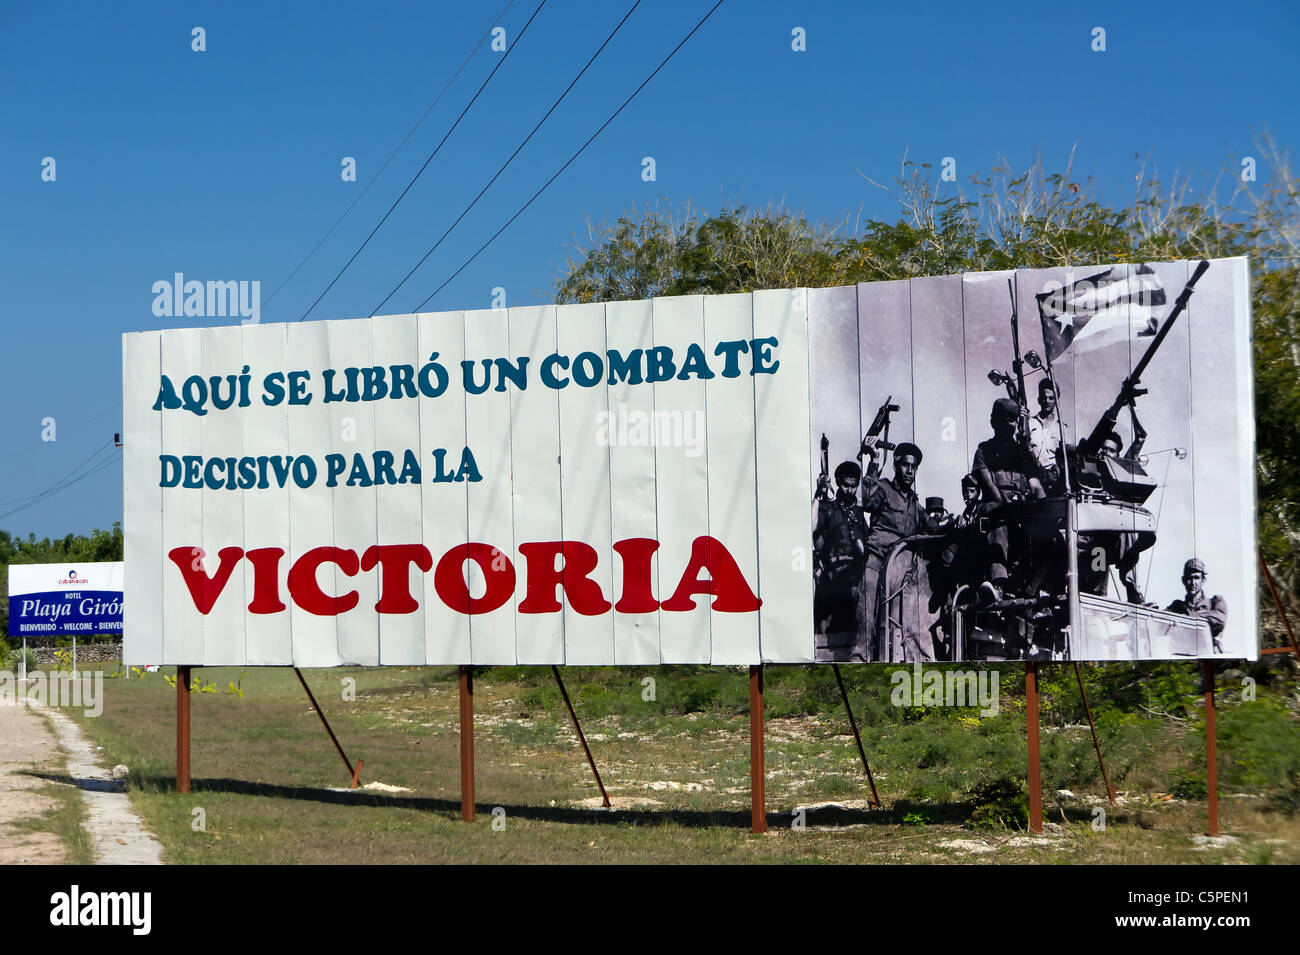 Cuban Bay of Pigs victory propaganda road sign, Playa Giron, Cuba - Stock Image